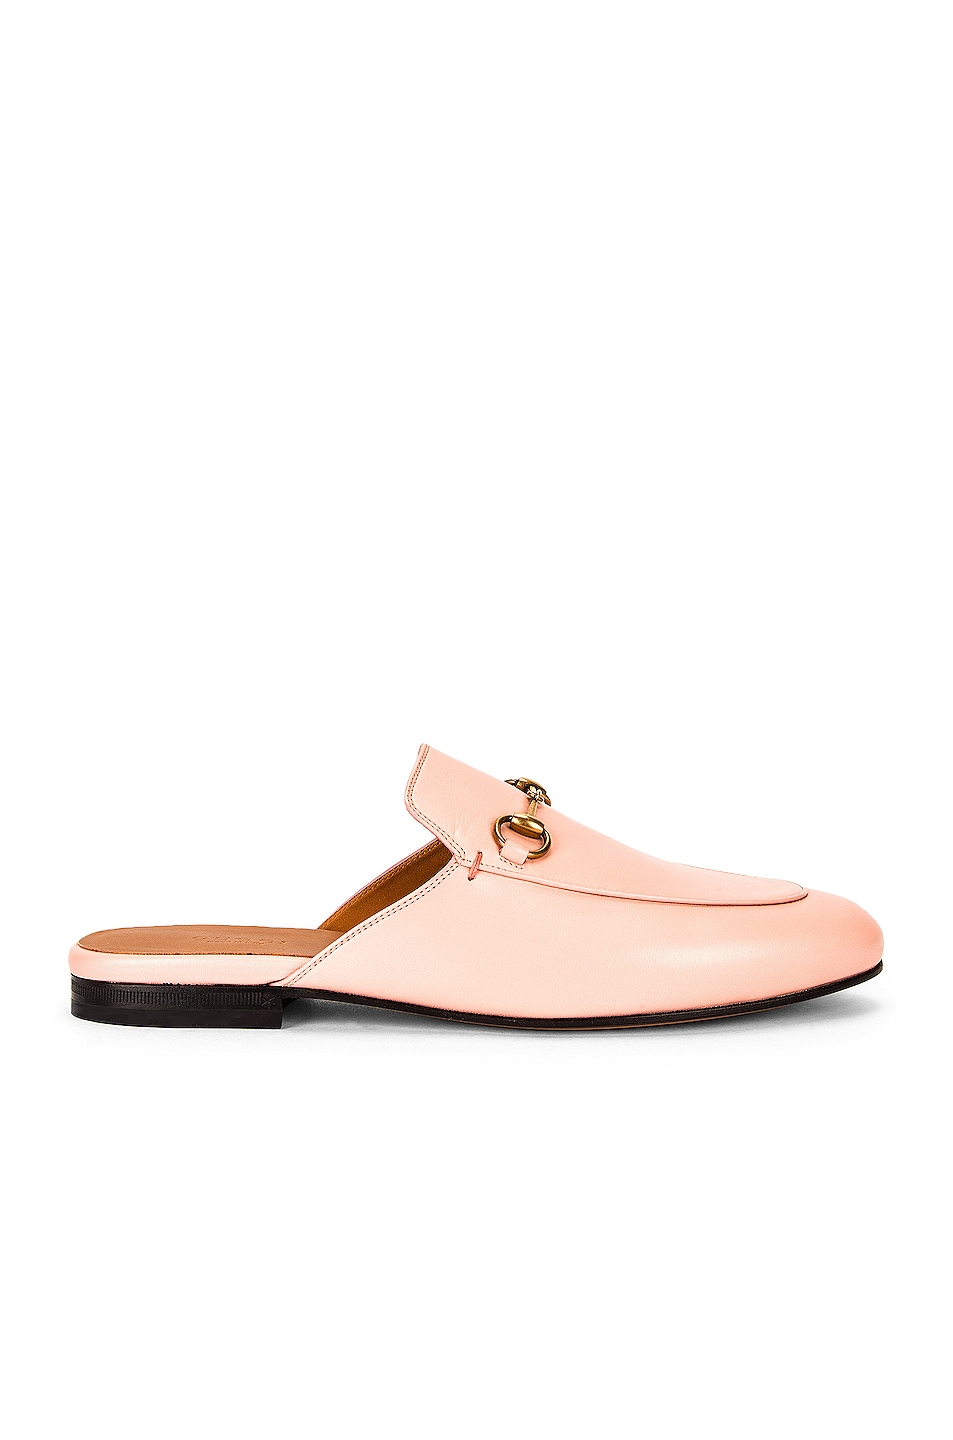 Image 1 of Gucci Princetown Slides in Pink